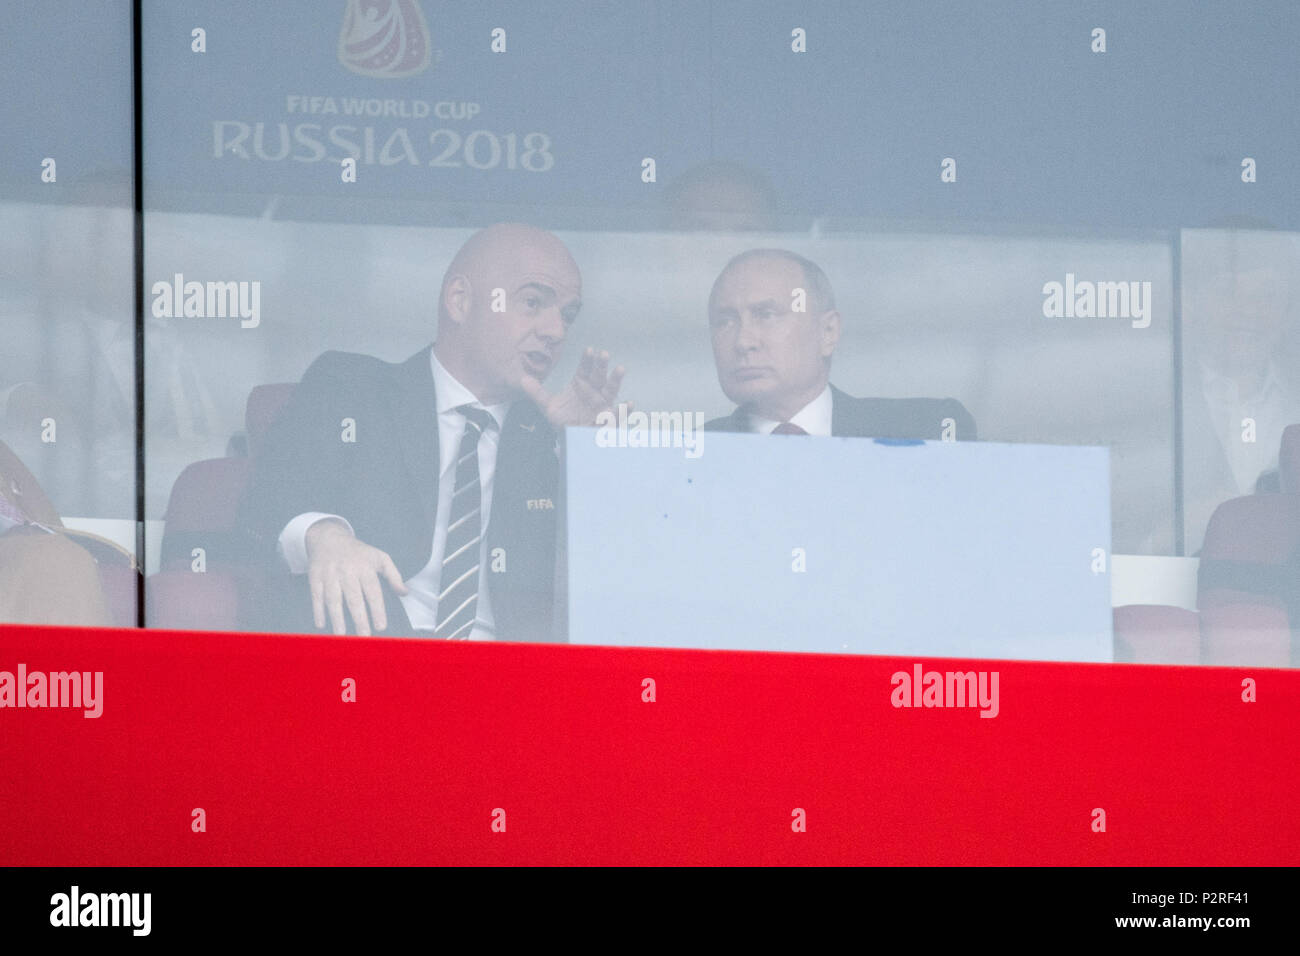 Gianni INFANTINO (left, President, FIFA) and Vladimir Vladimirovich Putin (Russian President), conversing, talking, talking, half figure, half figure, opening speech, opening, celebration, gesture, gesture, Russia (RUS) - Saudi Arabia ( KSA) 5: 0, preliminary round, group A, match 1, on 14.06.2018 in Moscow; Football World Cup 2018 in Russia from 14.06. - 15.07.2018. | usage worldwide - Stock Image